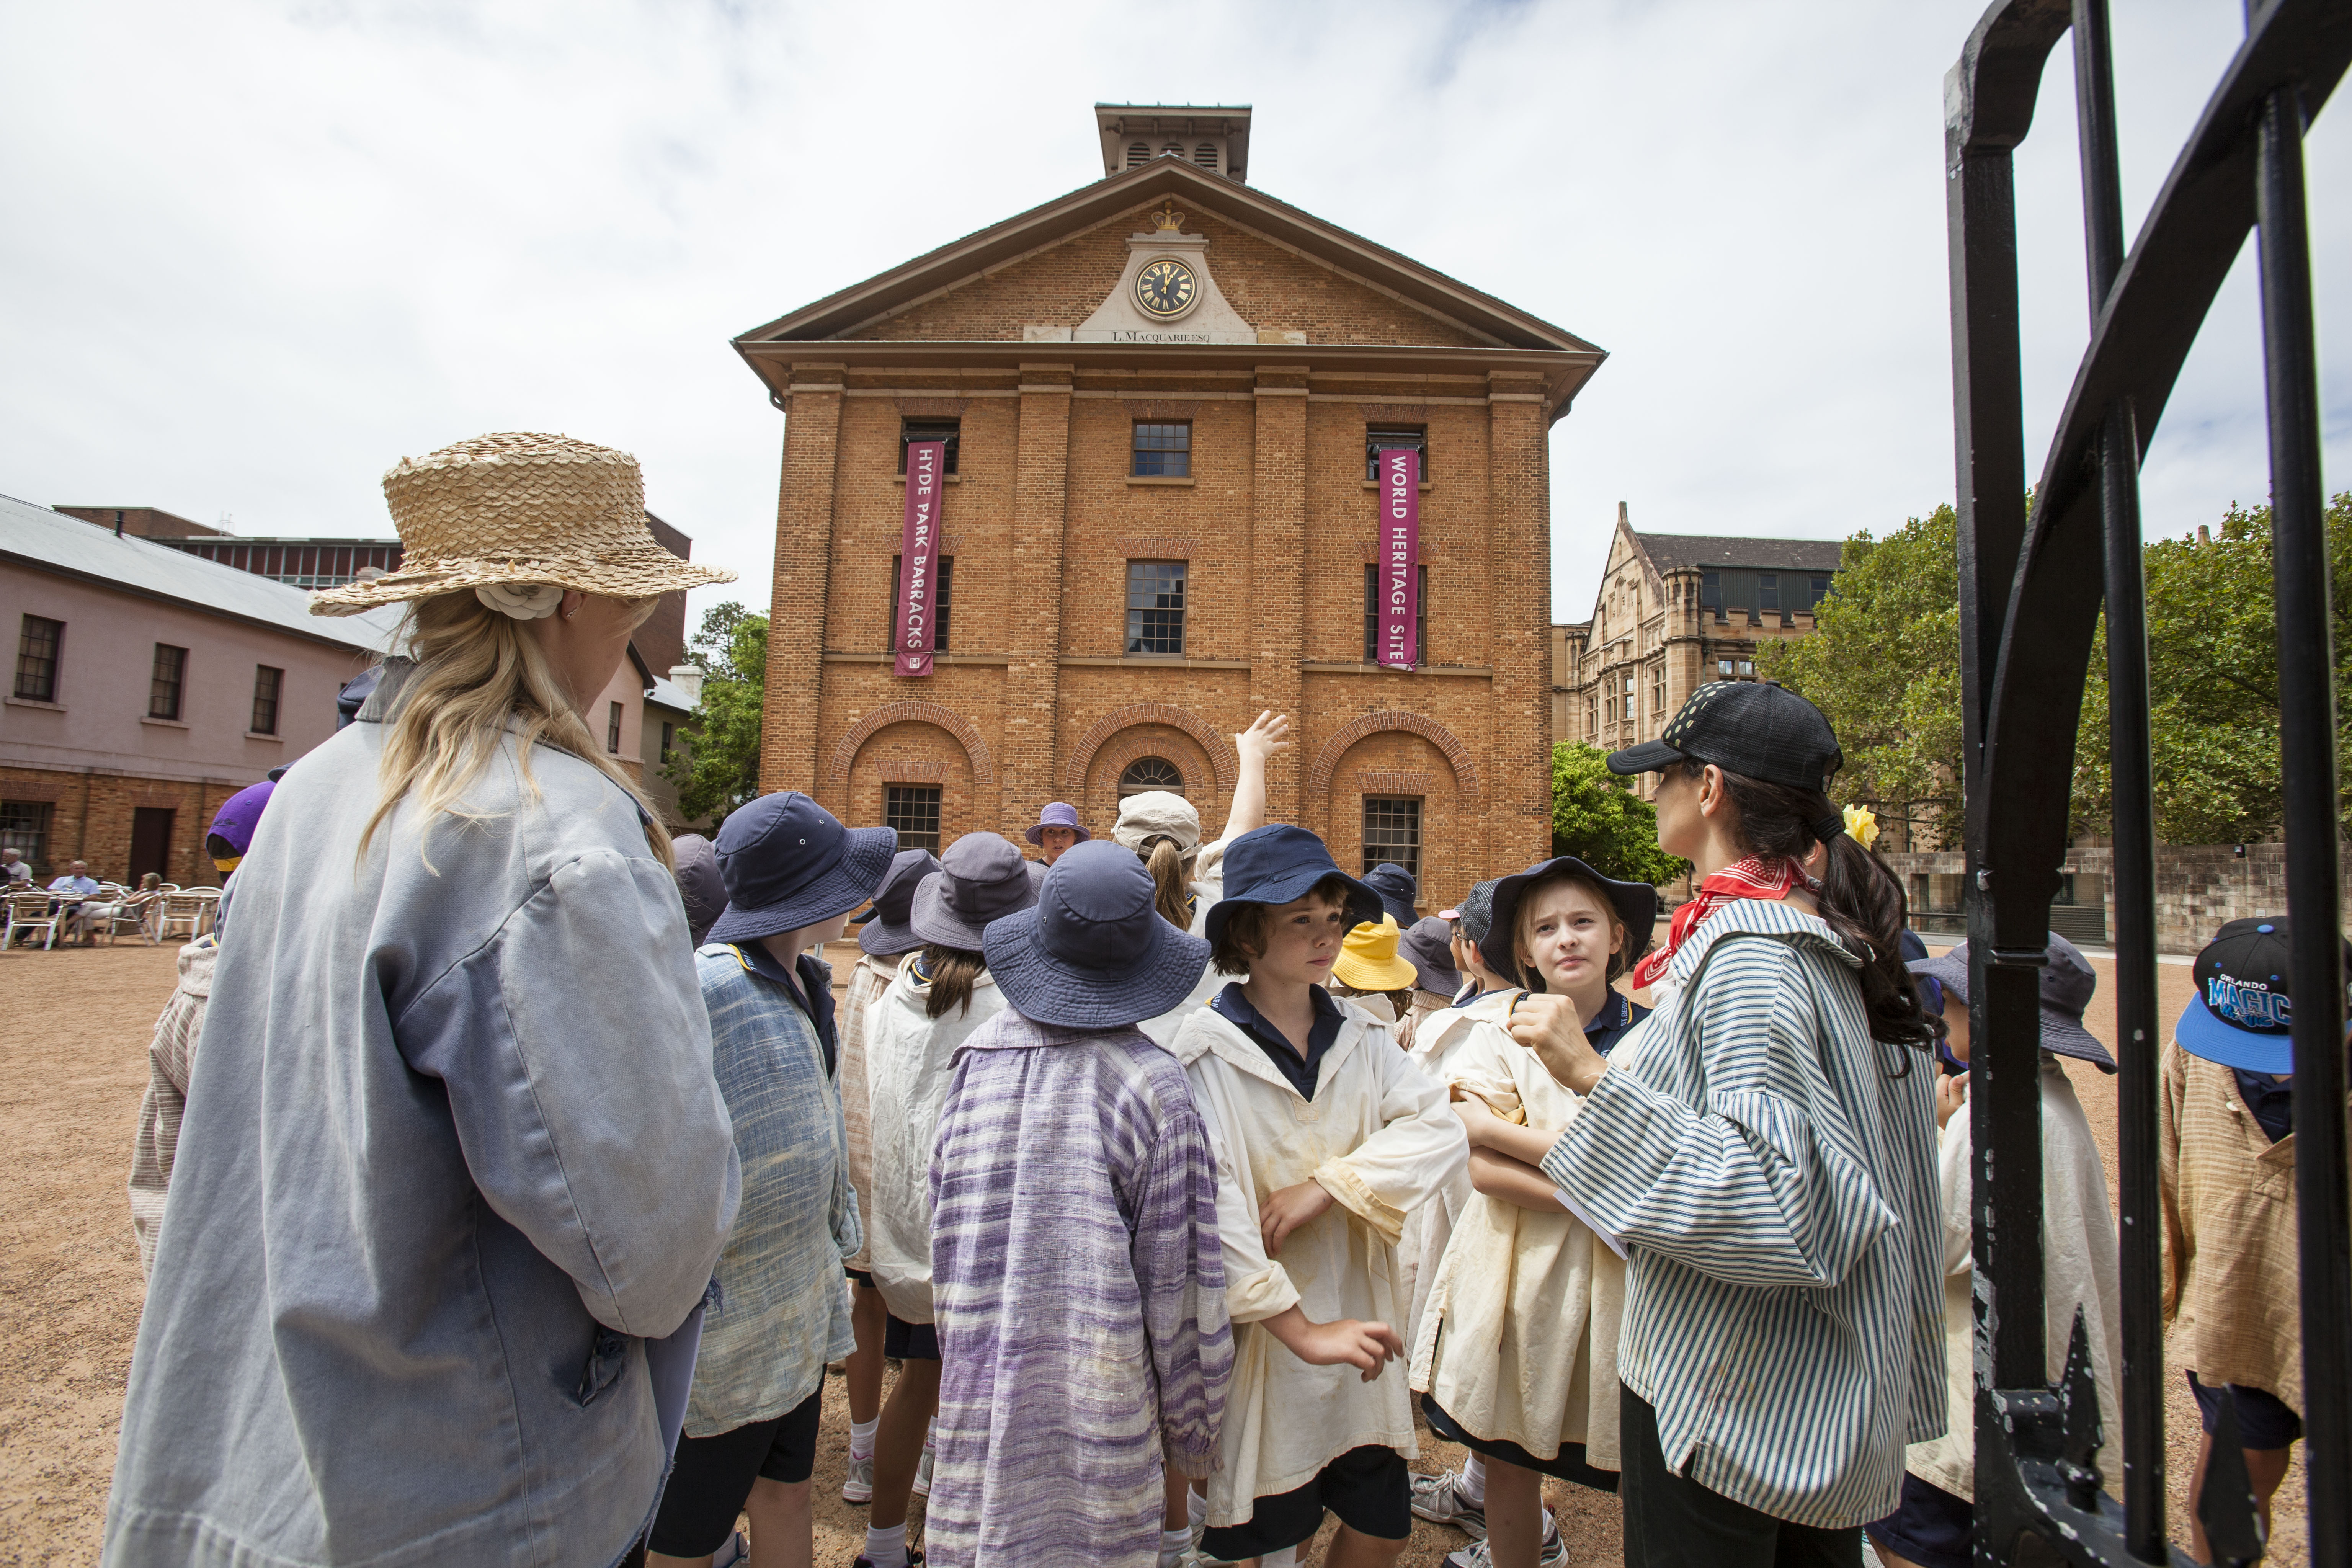 Students dressed as convicts standing at the Barracks gates. The main building can be seen behind them.